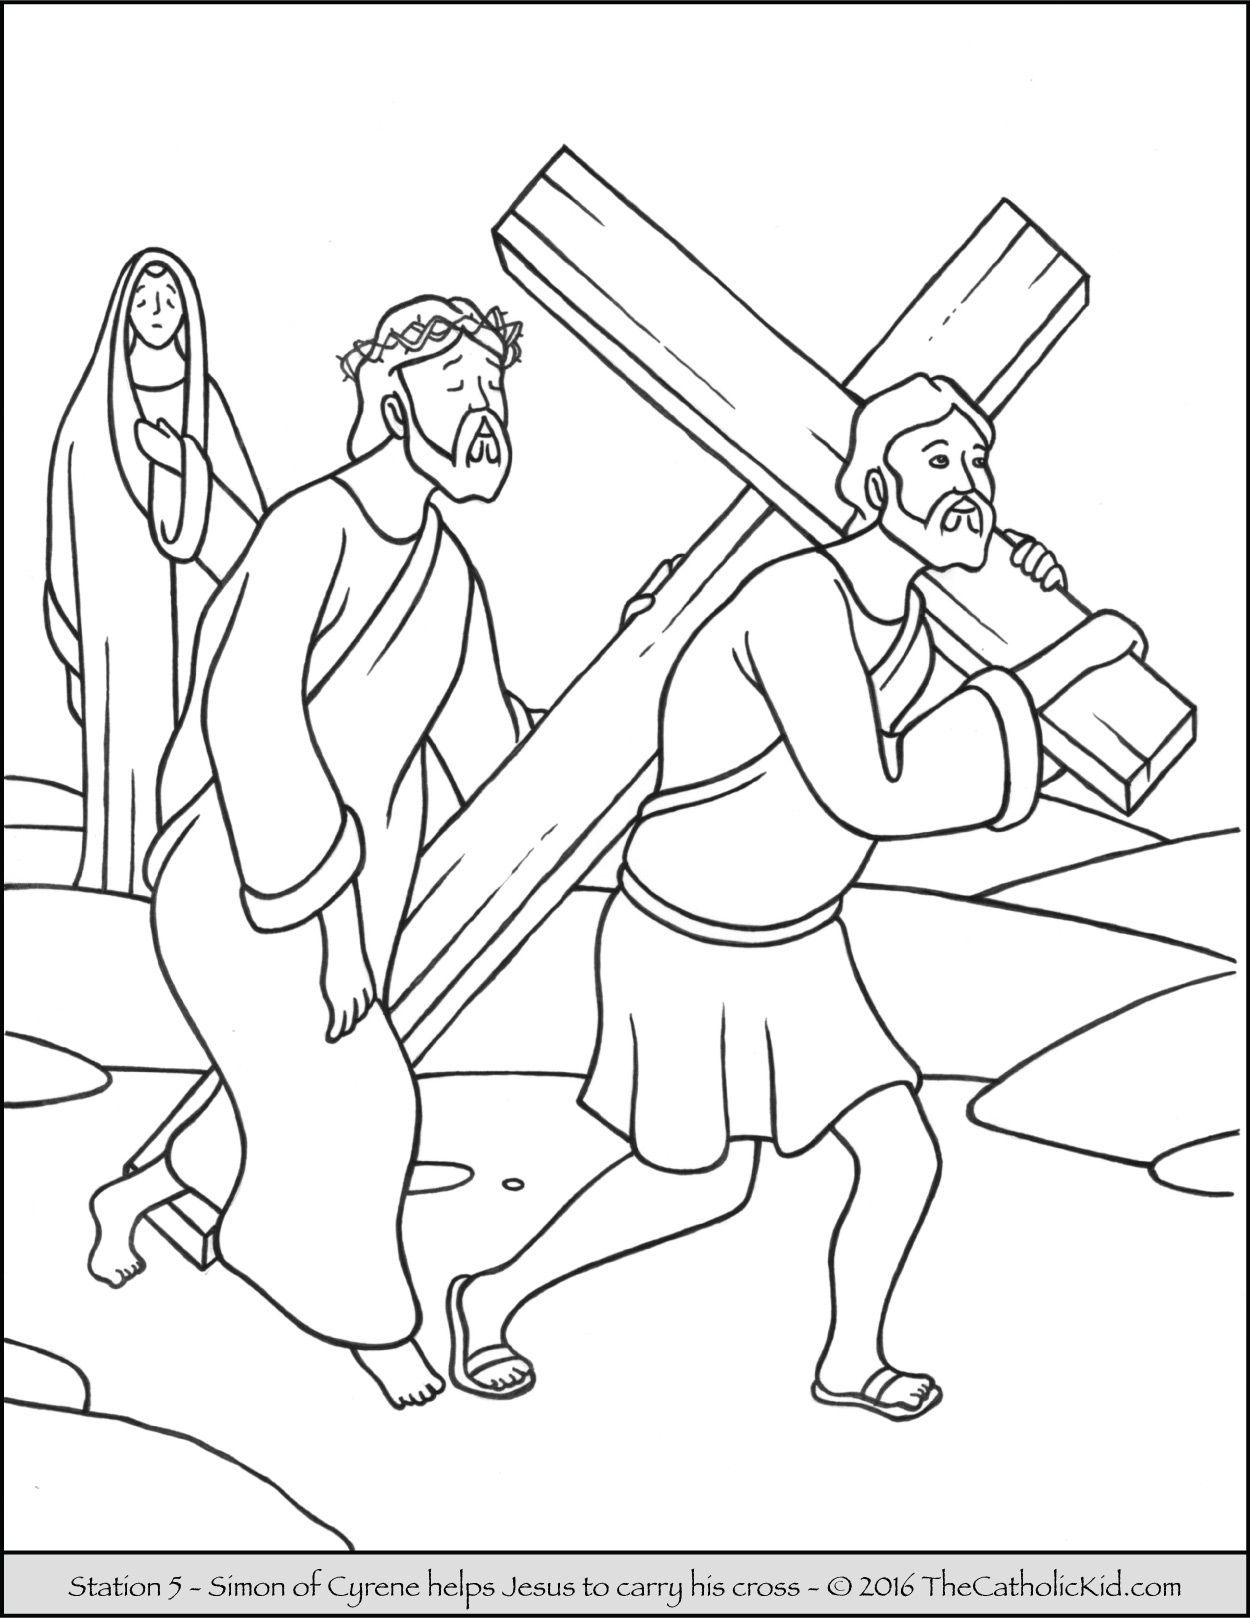 Catholic stations of the cross clipart 5 » Clipart Portal.